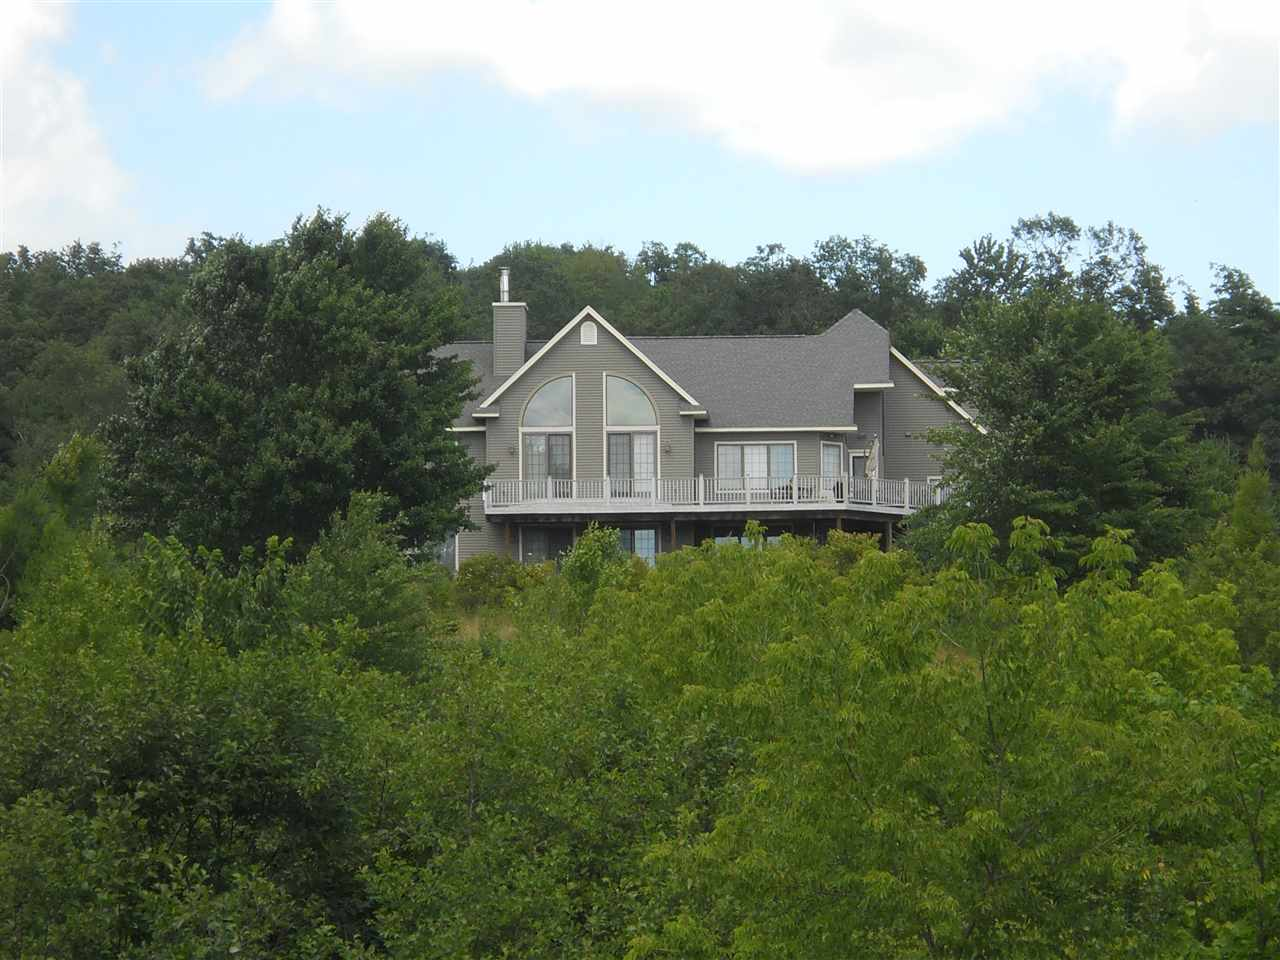 S590 Hirst Rd, Winfield, WI 53959